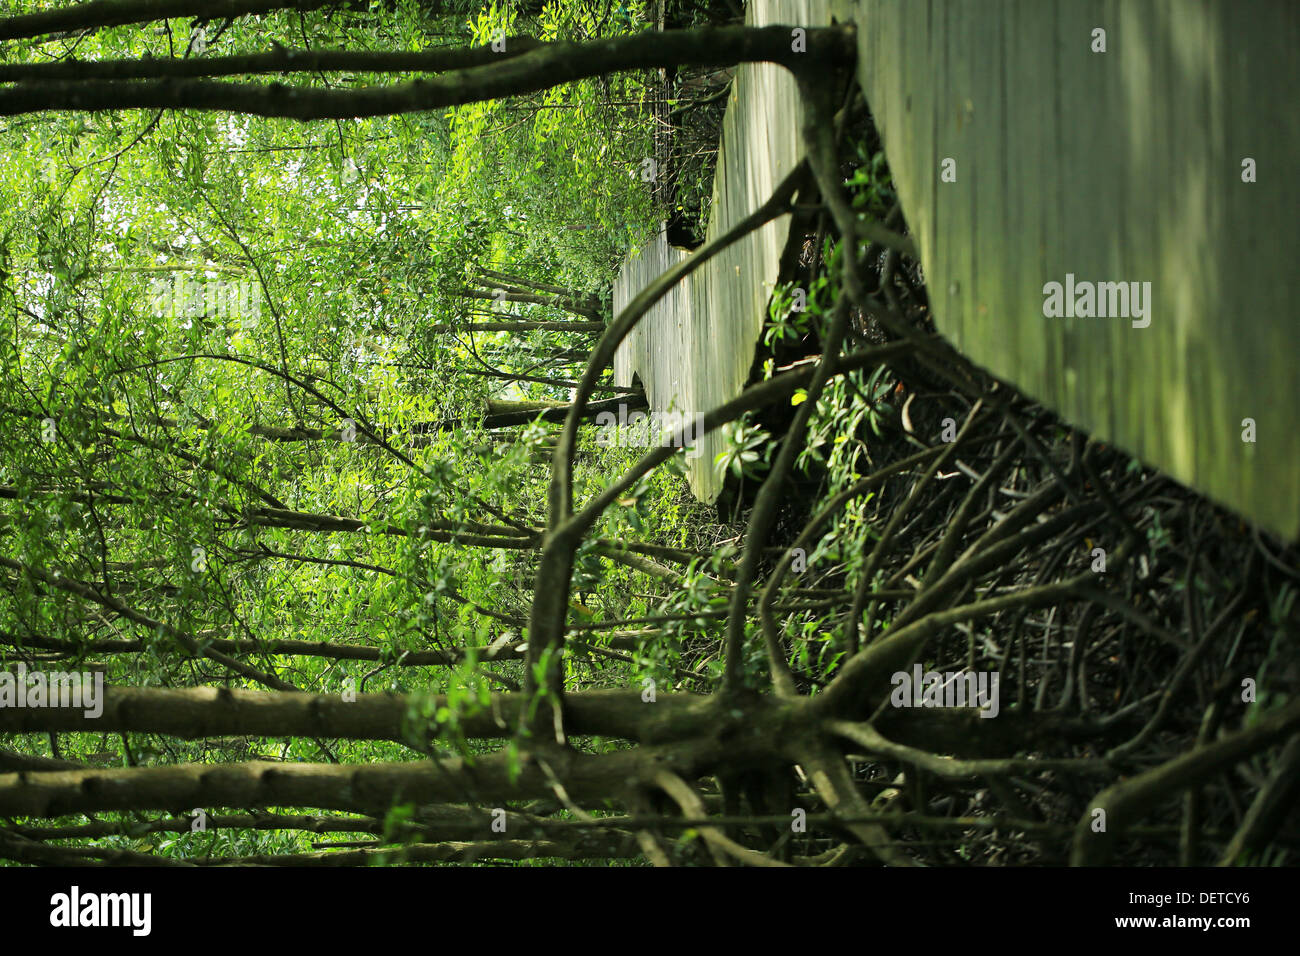 Mangrove forest in Kalimantan - Stock Image